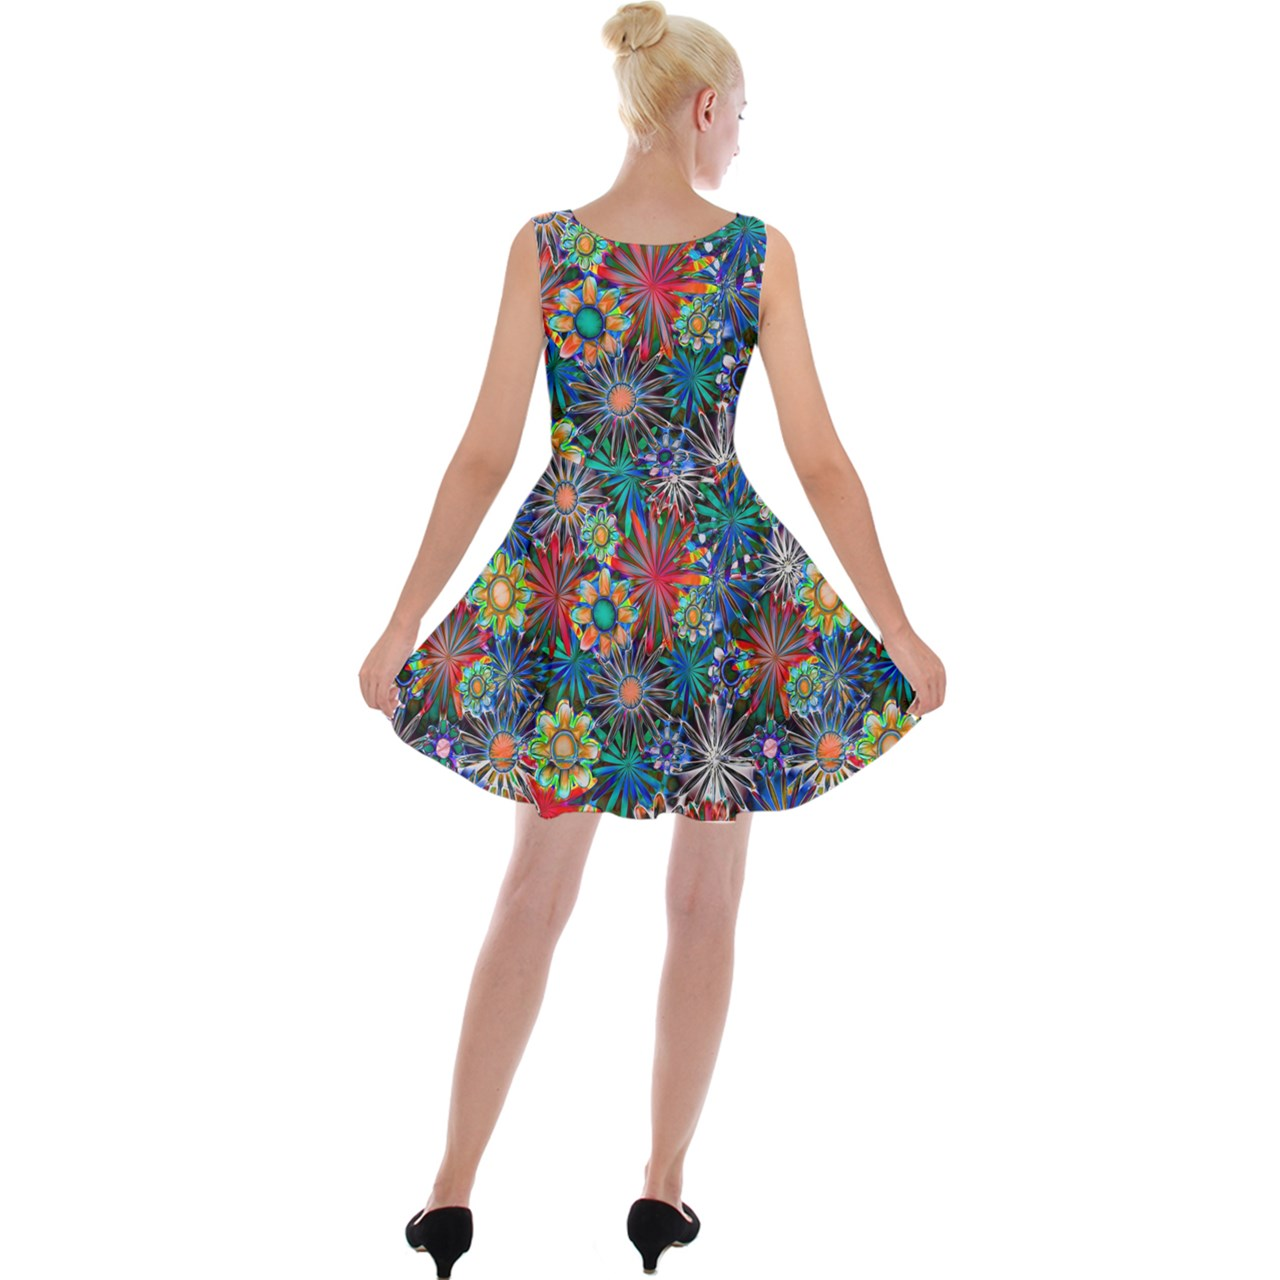 Daisy Garden Velvet Skater Dress